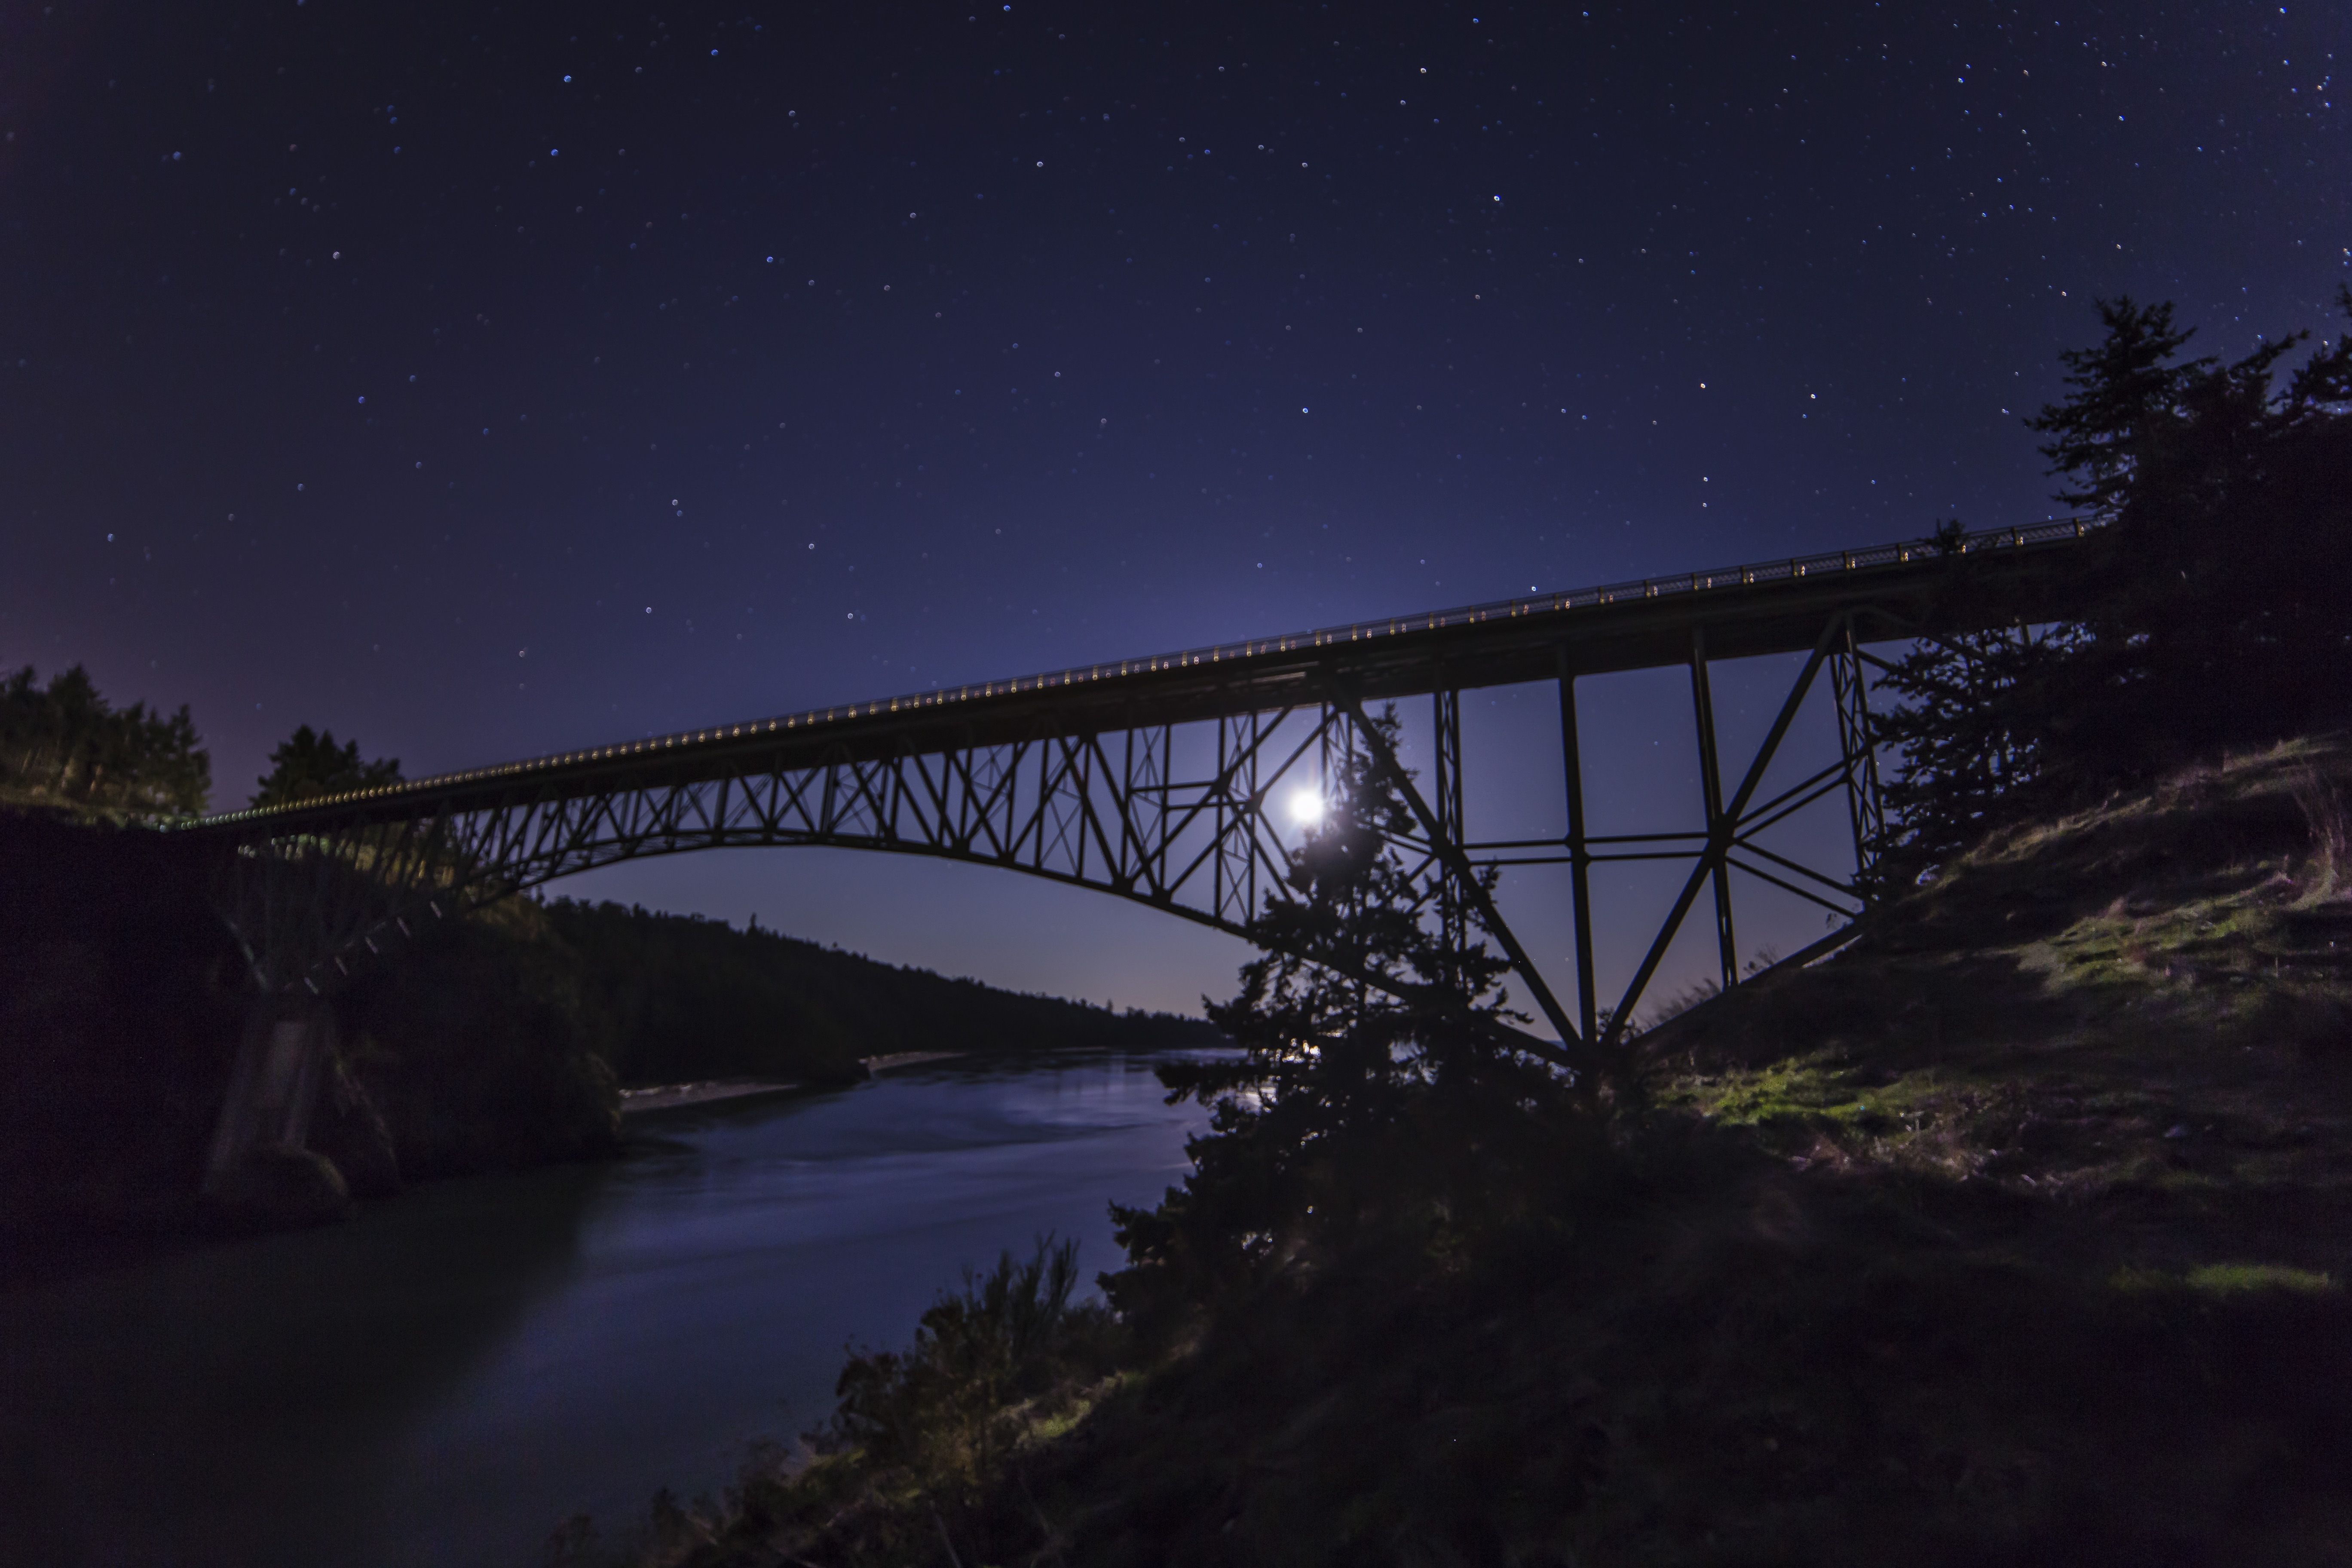 Nighttime Photography Andy Porter Images